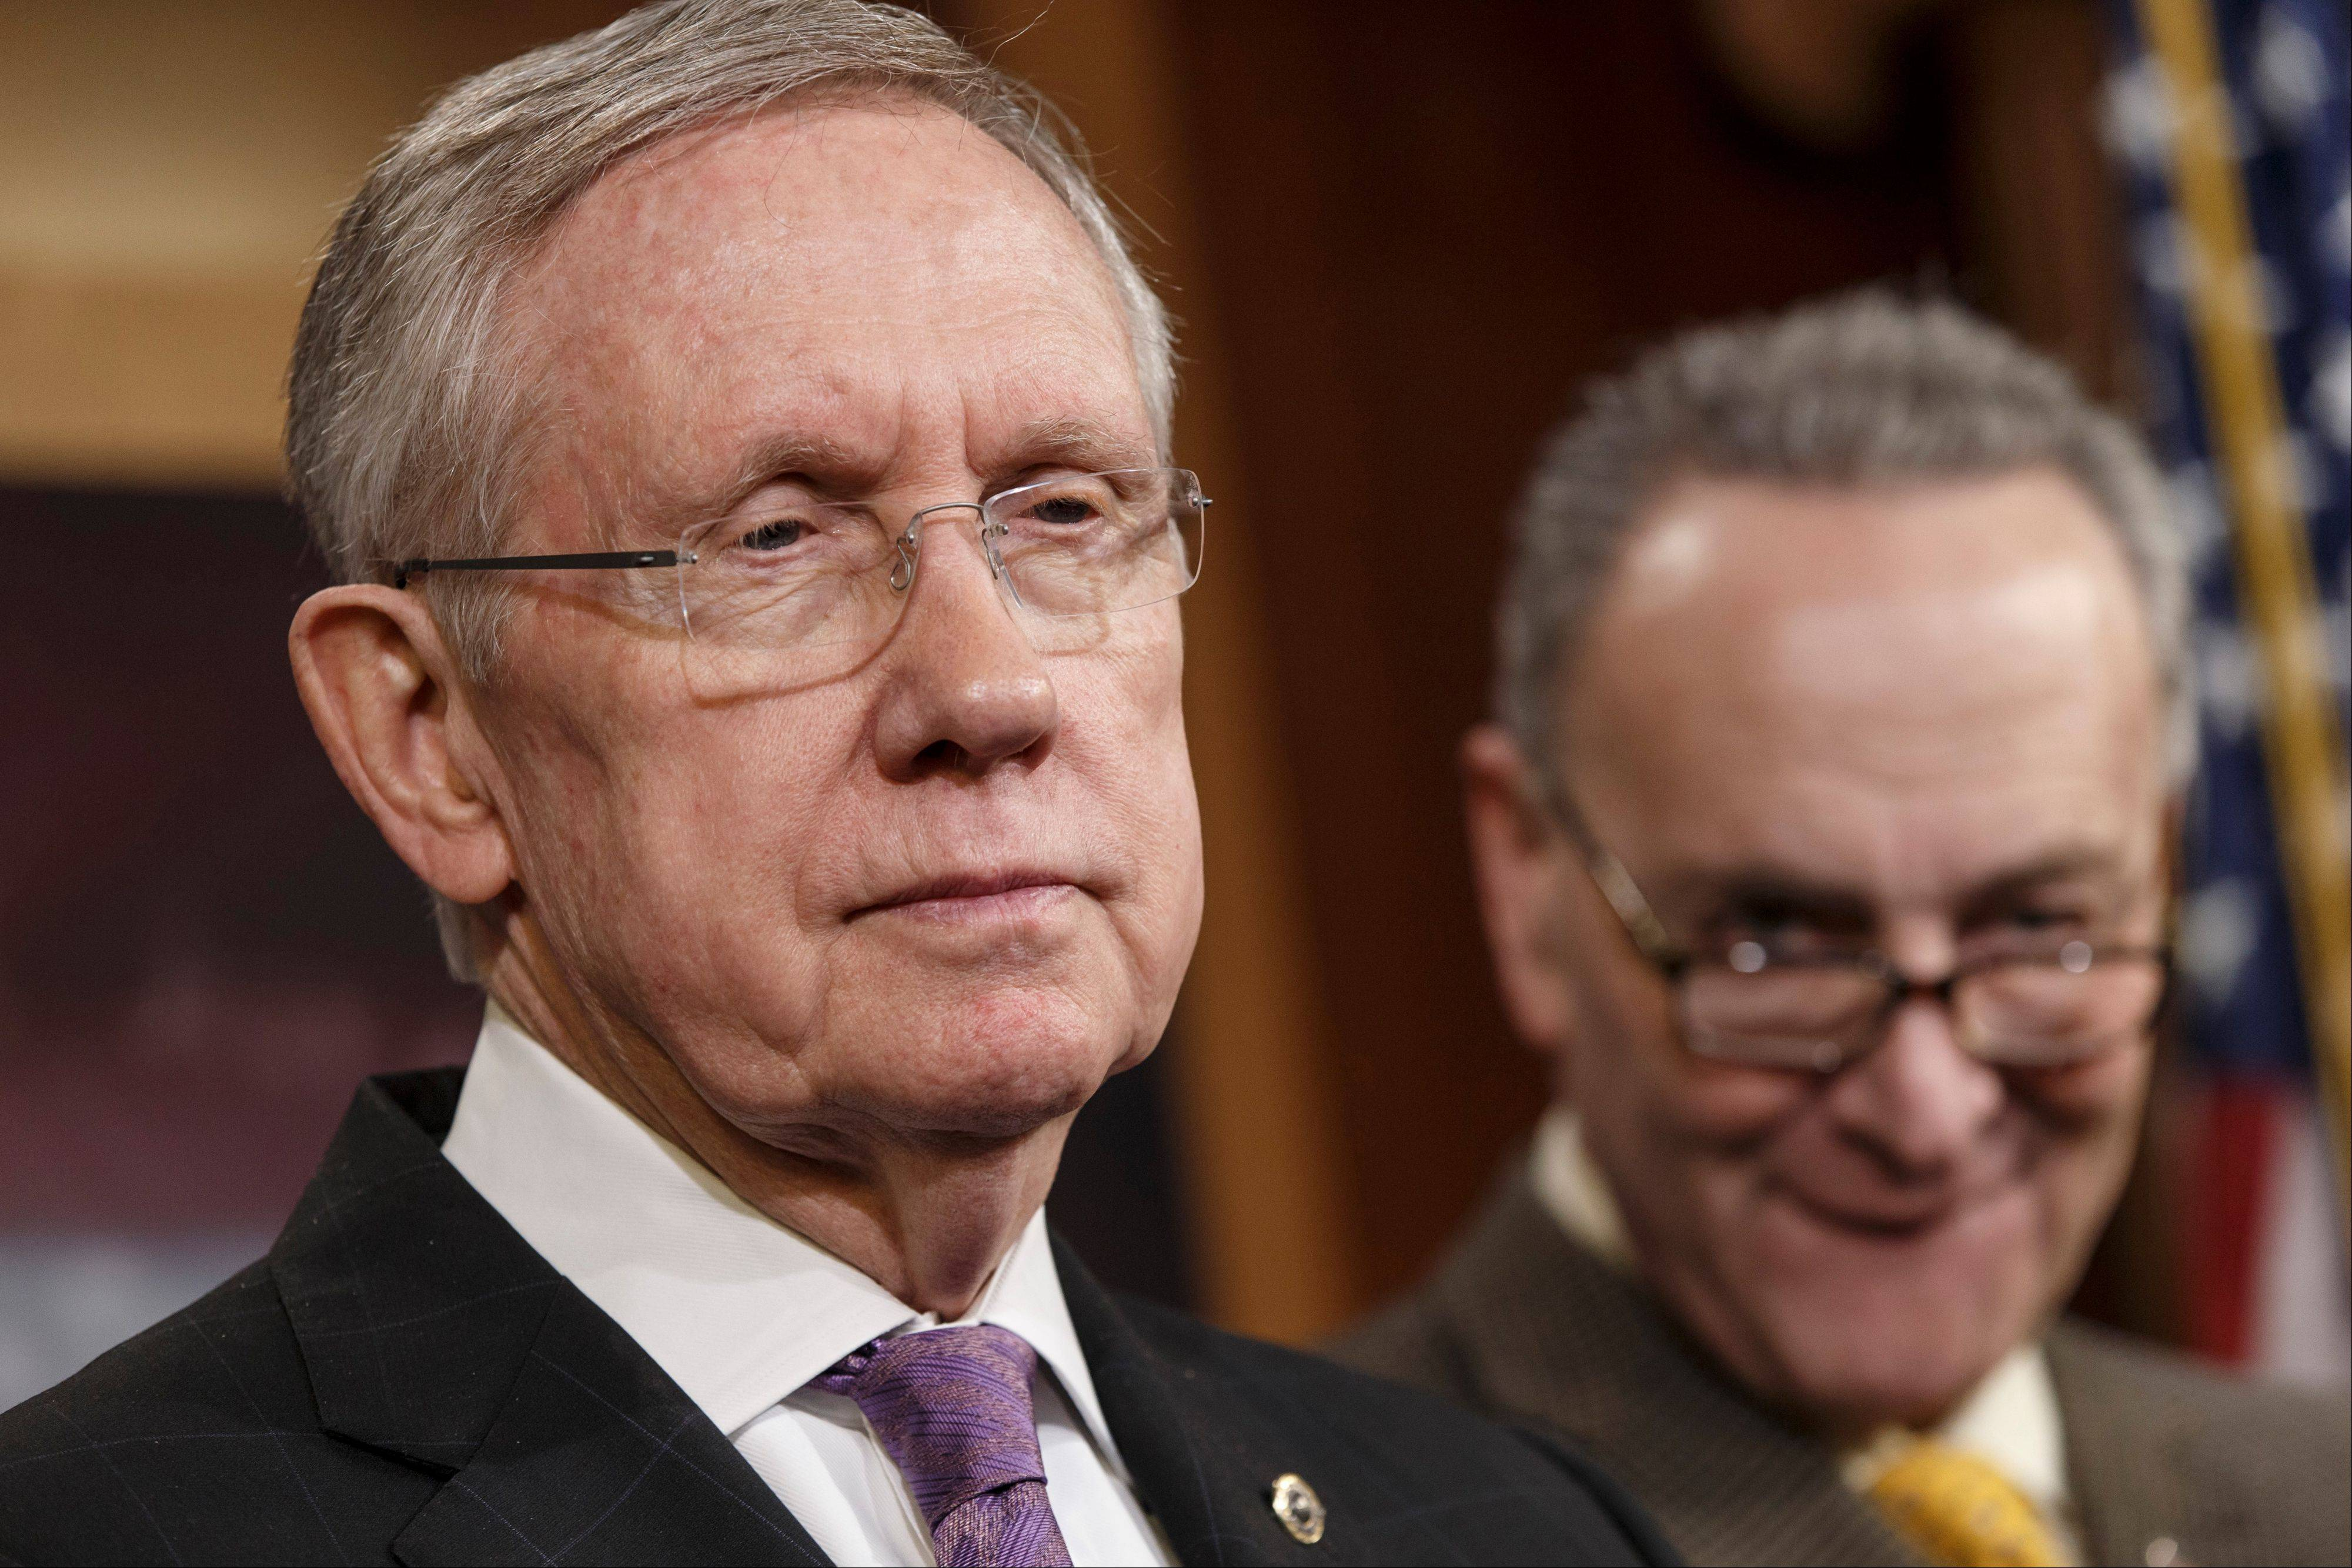 In a standoff over extending jobless benefits, Senate Majority Leader Harry Reid on Thursday accused Republicans of �continually denigrating our economy, our president and frankly, I believe, our country.�